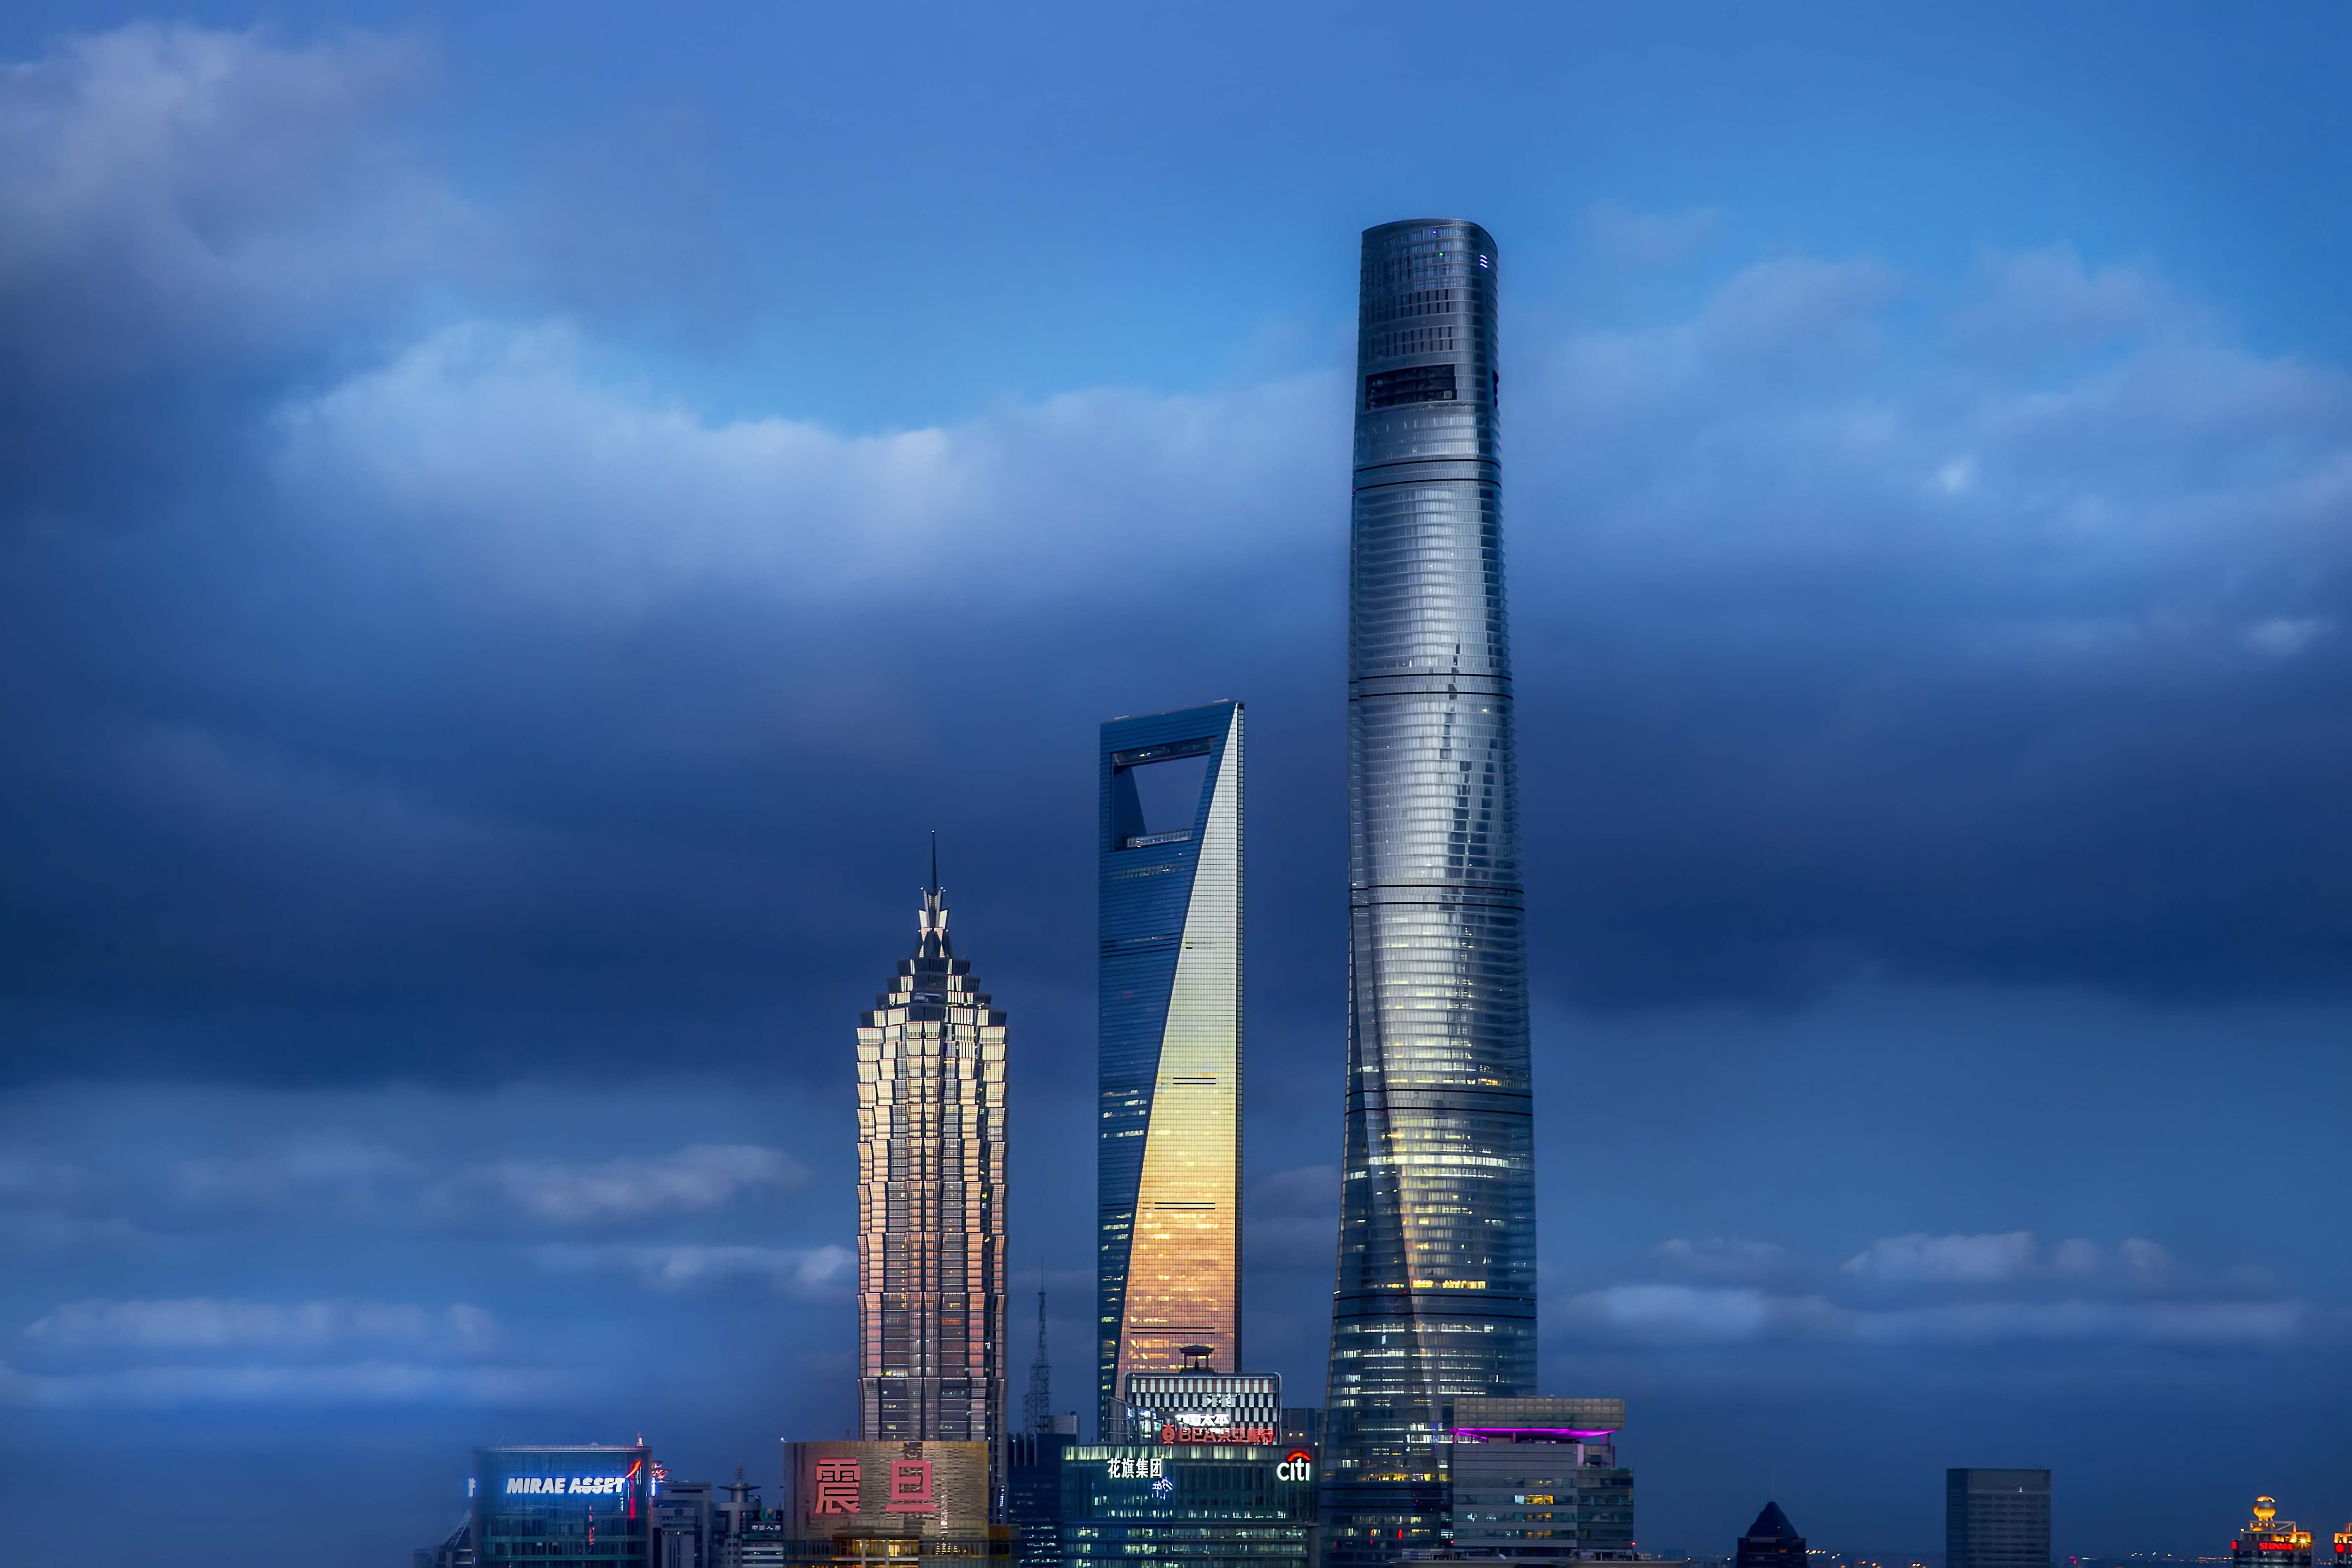 Limited Time 50% OFF | Shanghai Tower Observation Deck Ticket